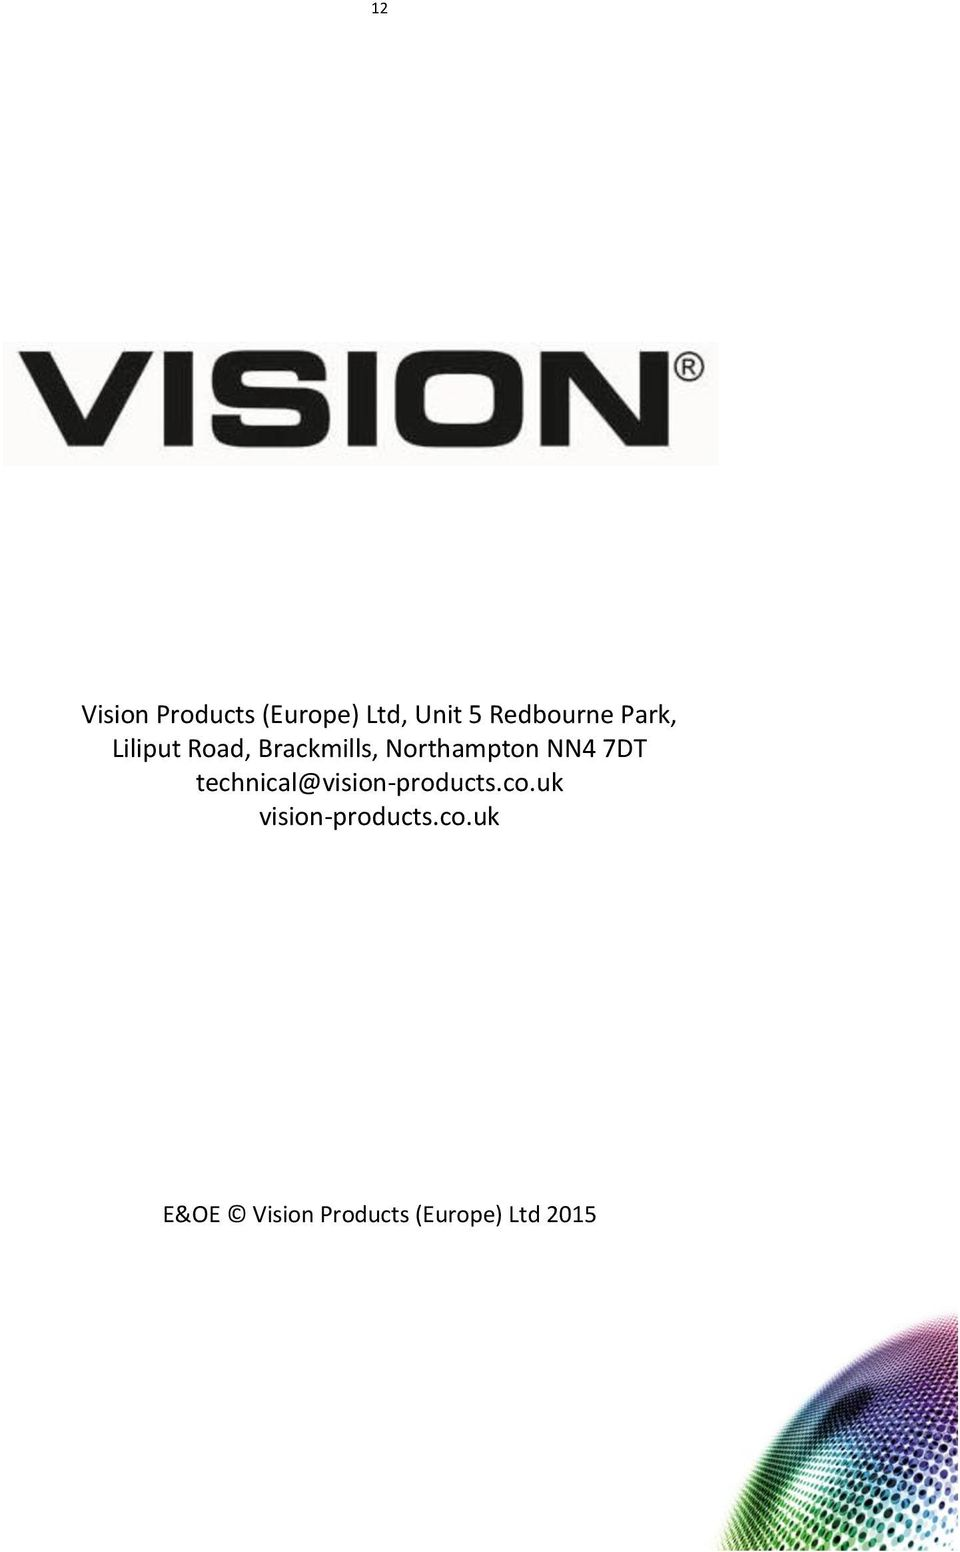 Northampton NN4 7DT technical@vision-products.co.